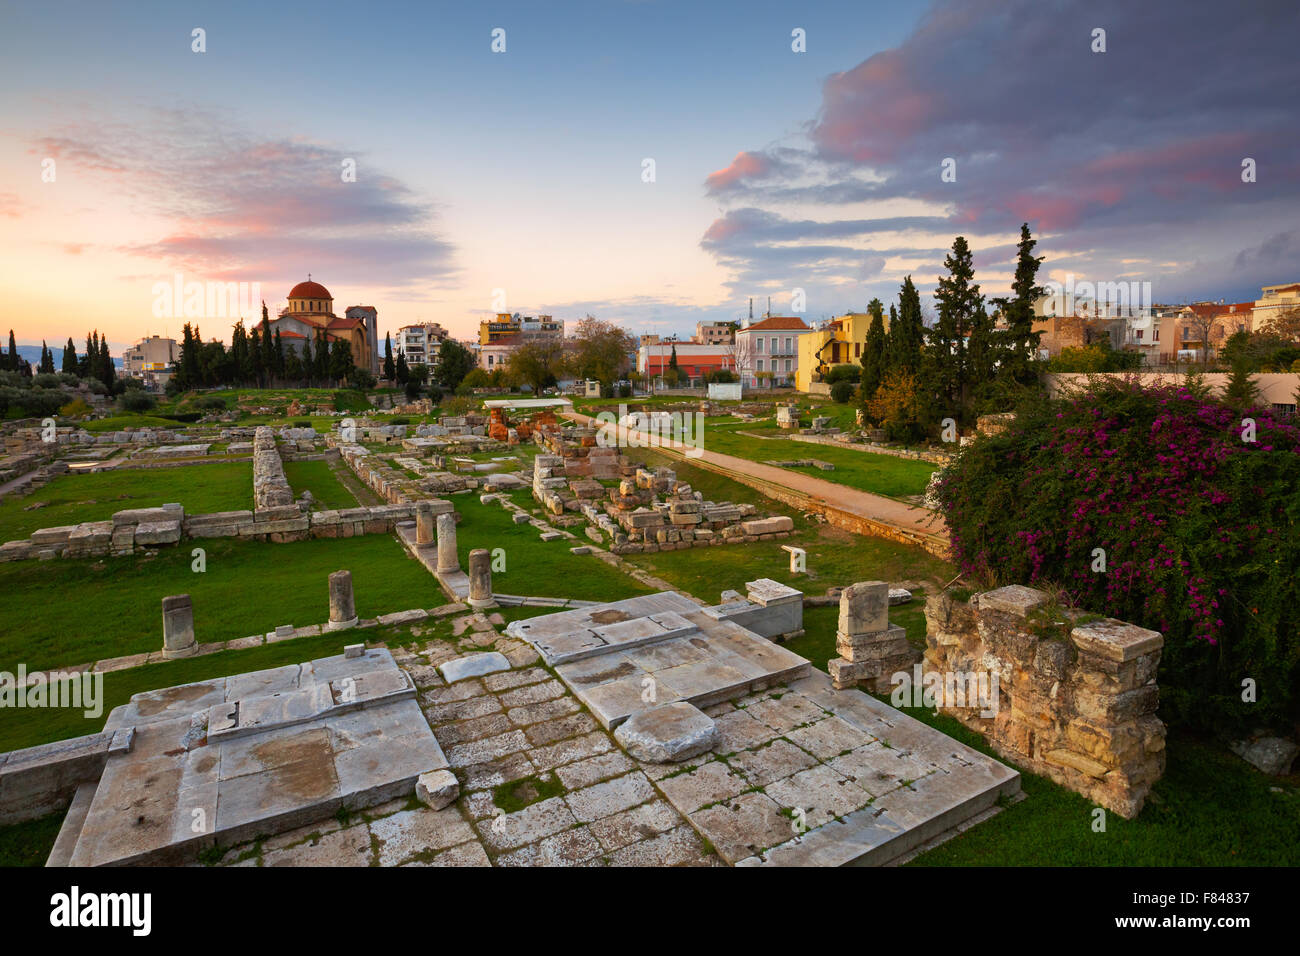 Archaeological site of Kerameikos nearby the ancient Agora in Athens. - Stock Image